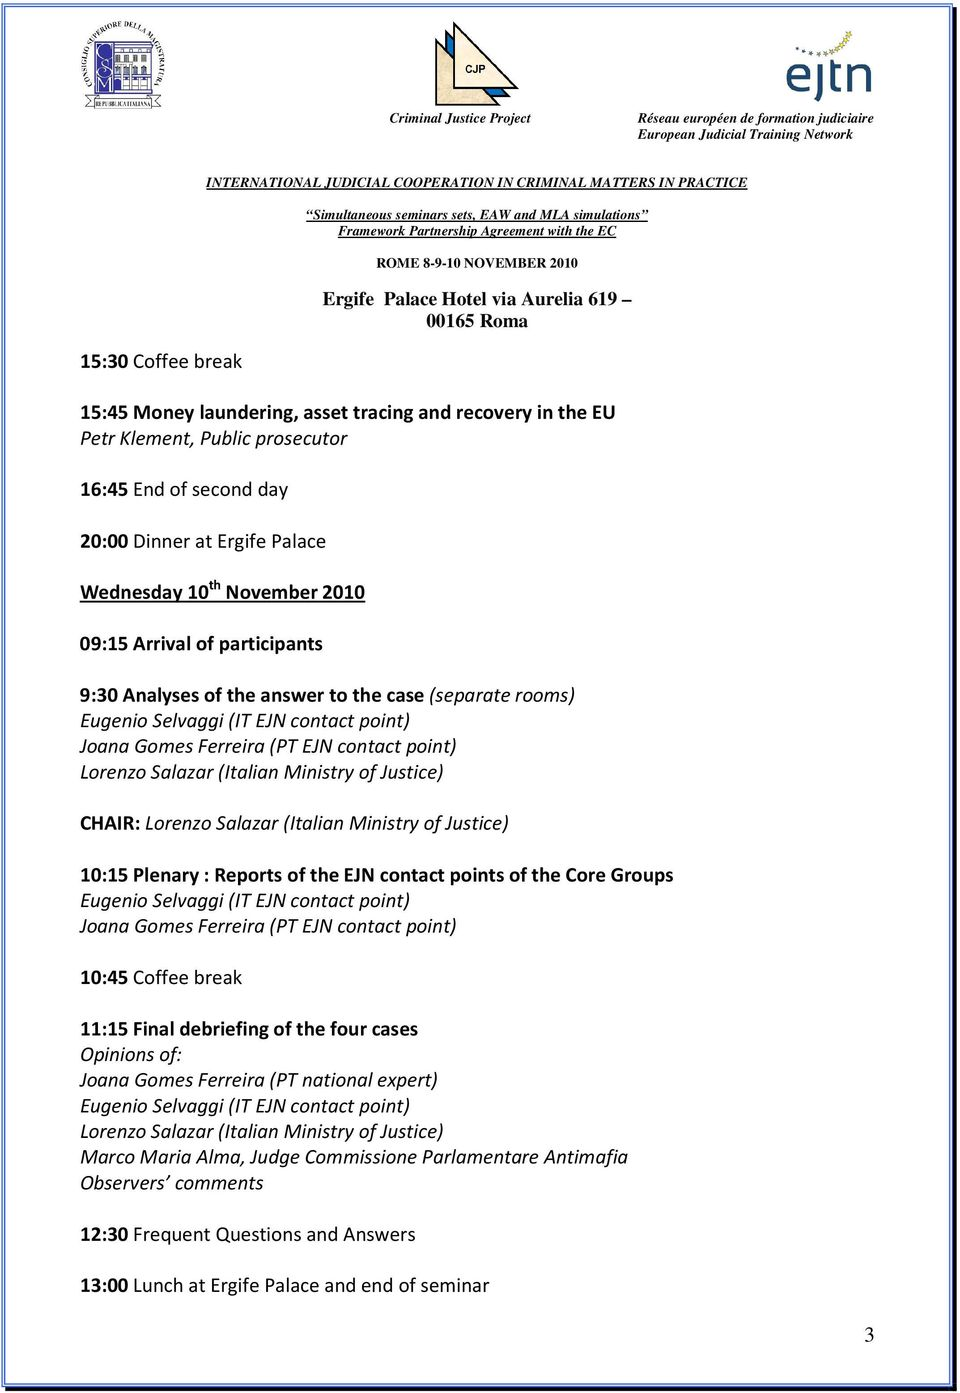 (Italian Ministry of Justice) 10:15 Plenary : Reports of the EJN contact points of the Core Groups 10:45 Coffee break 11:15 Final debriefing of the four cases Opinions of: Joana